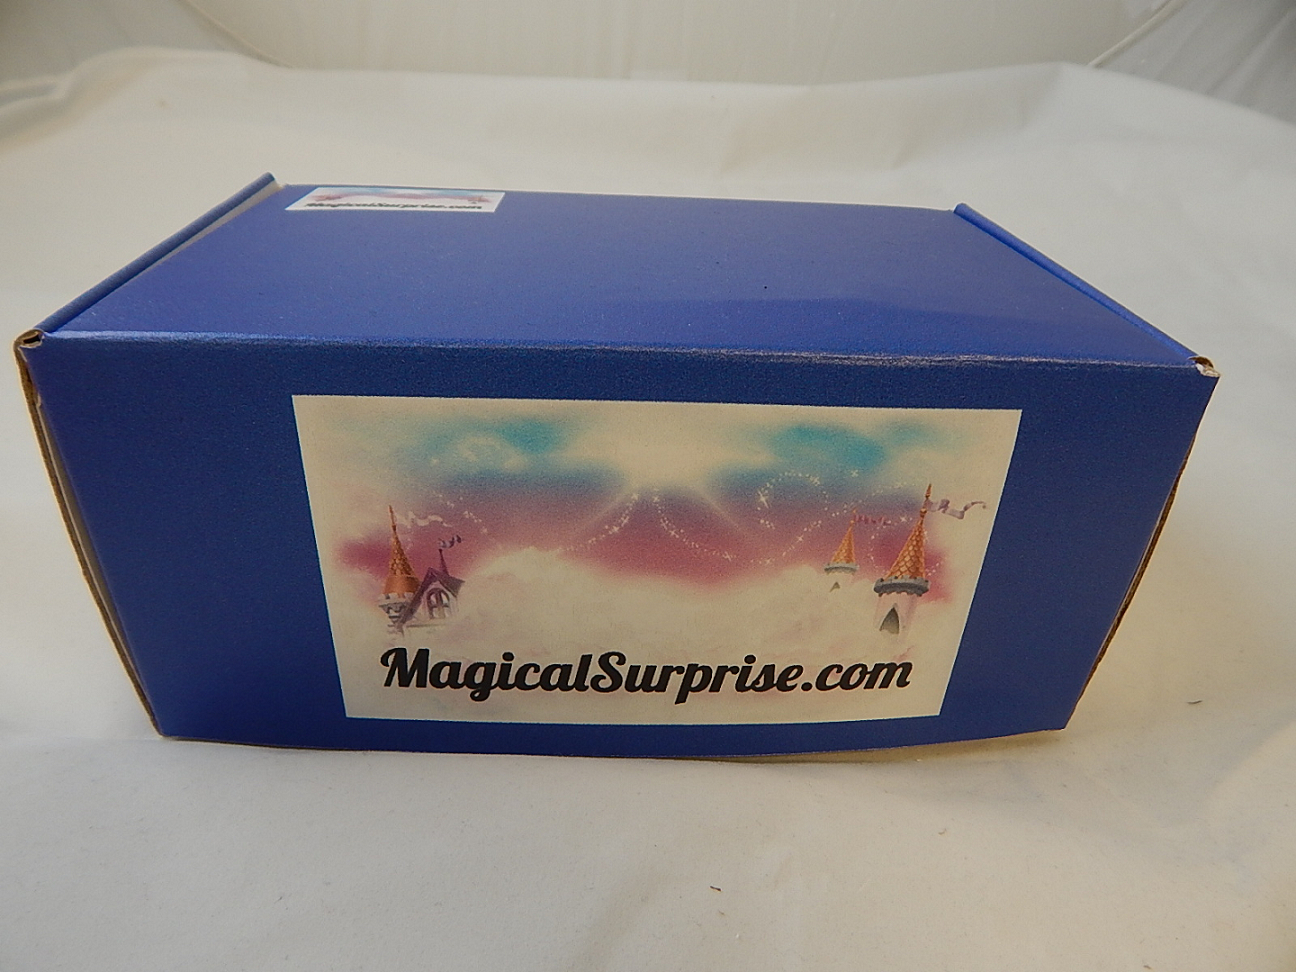 Magical Surprise Mystery Box - One-Time